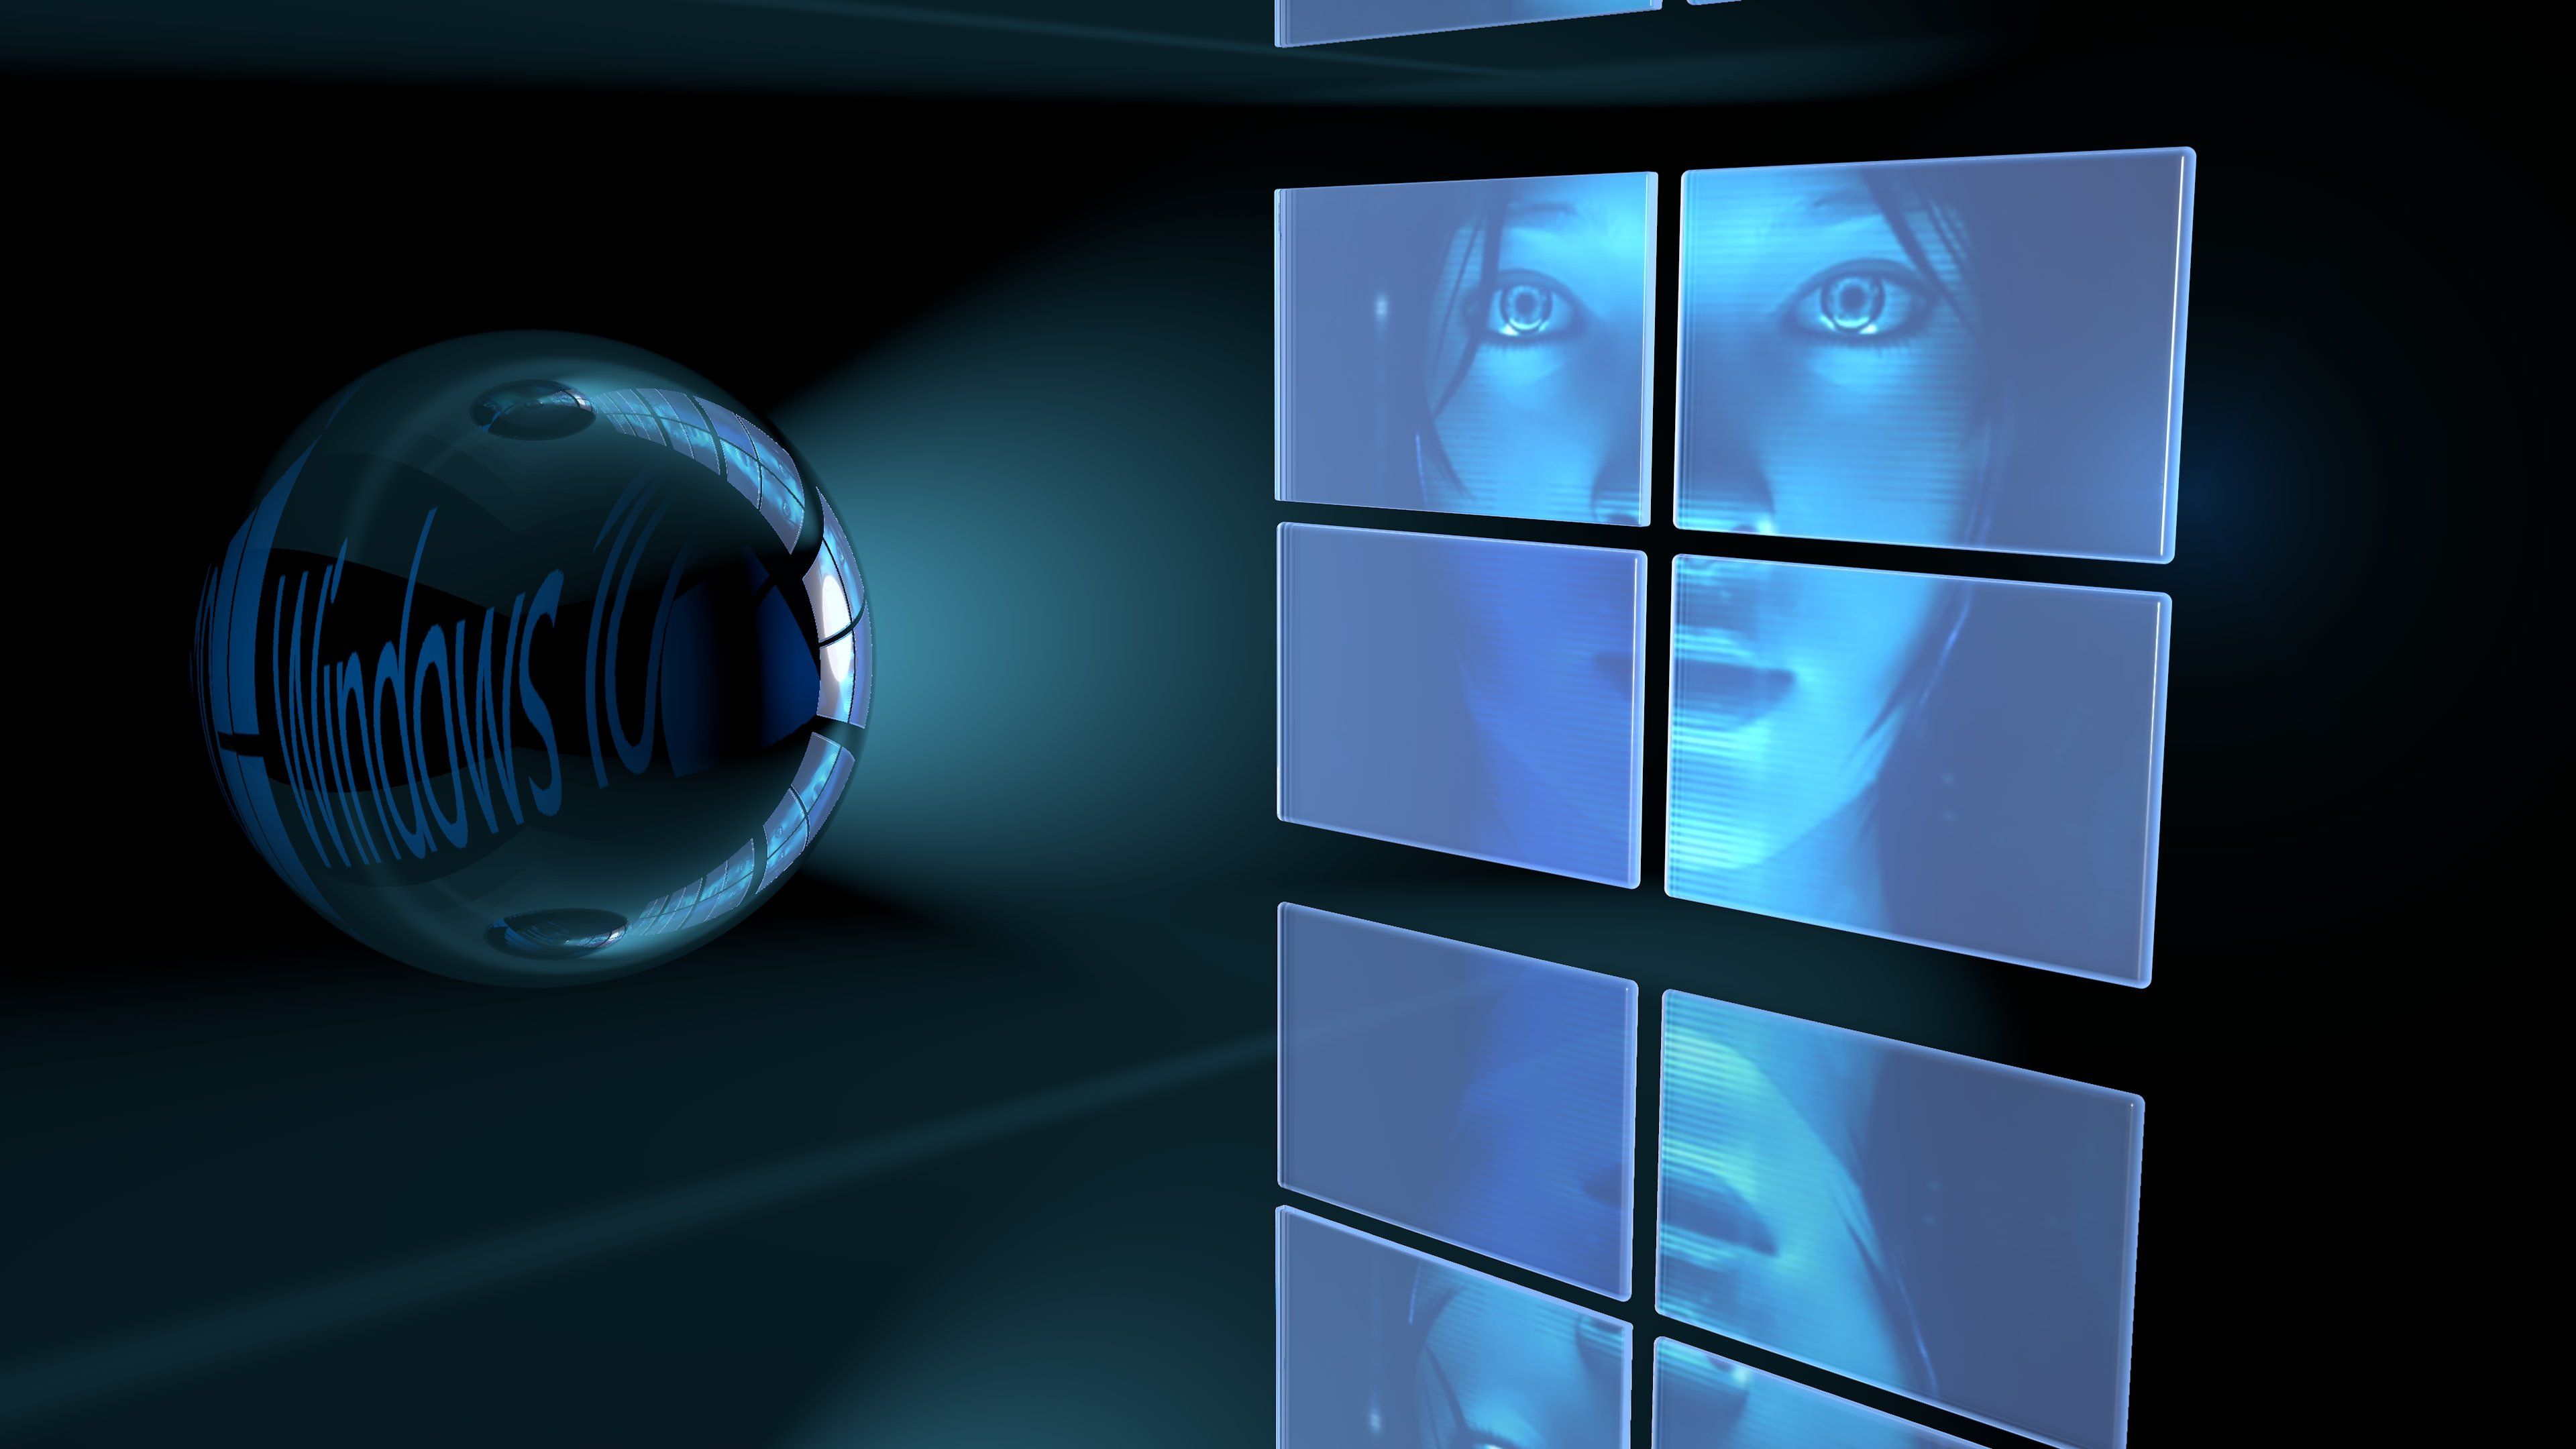 Cortana Animated Wallpaper Windows 10